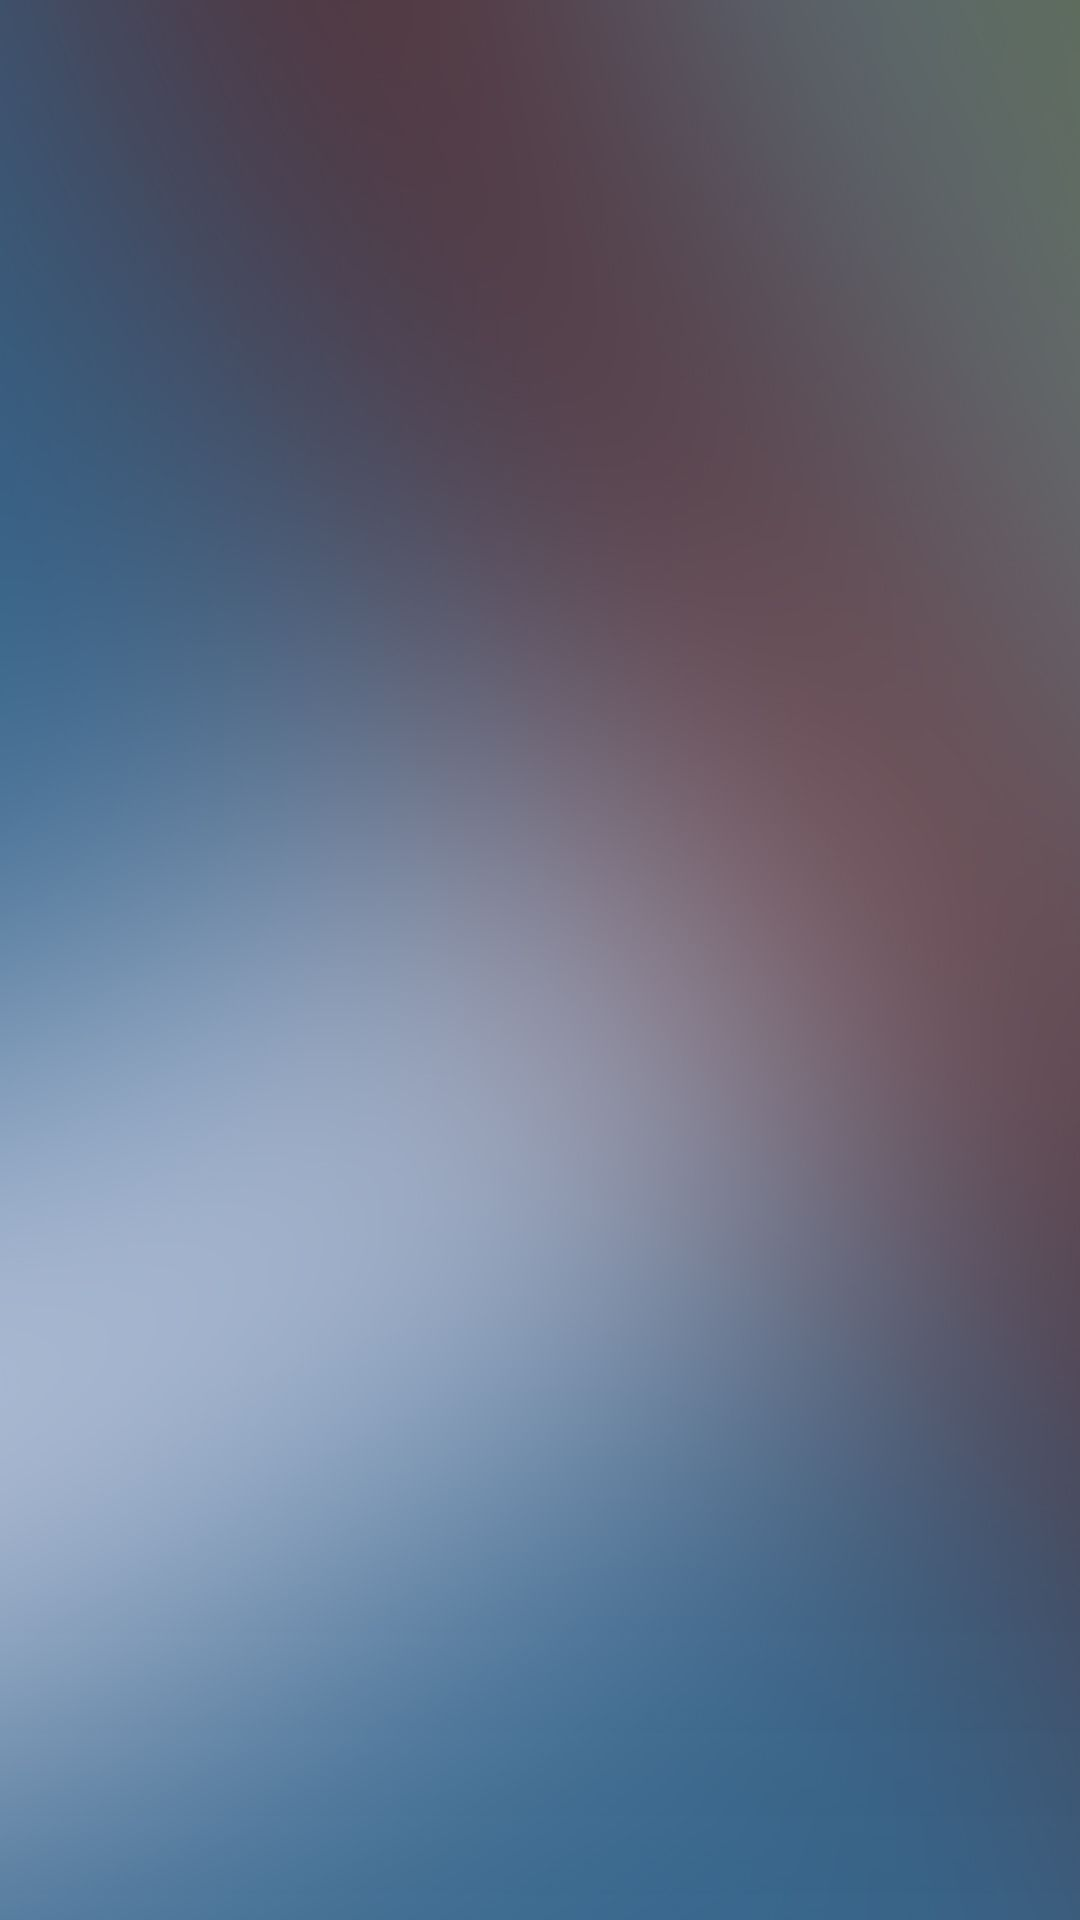 Http Www Vactualpapers Com Gallery Blurry Abstract Background Mobile Hd Wallpaper18 Blurred Background Sky And Clouds Green Art